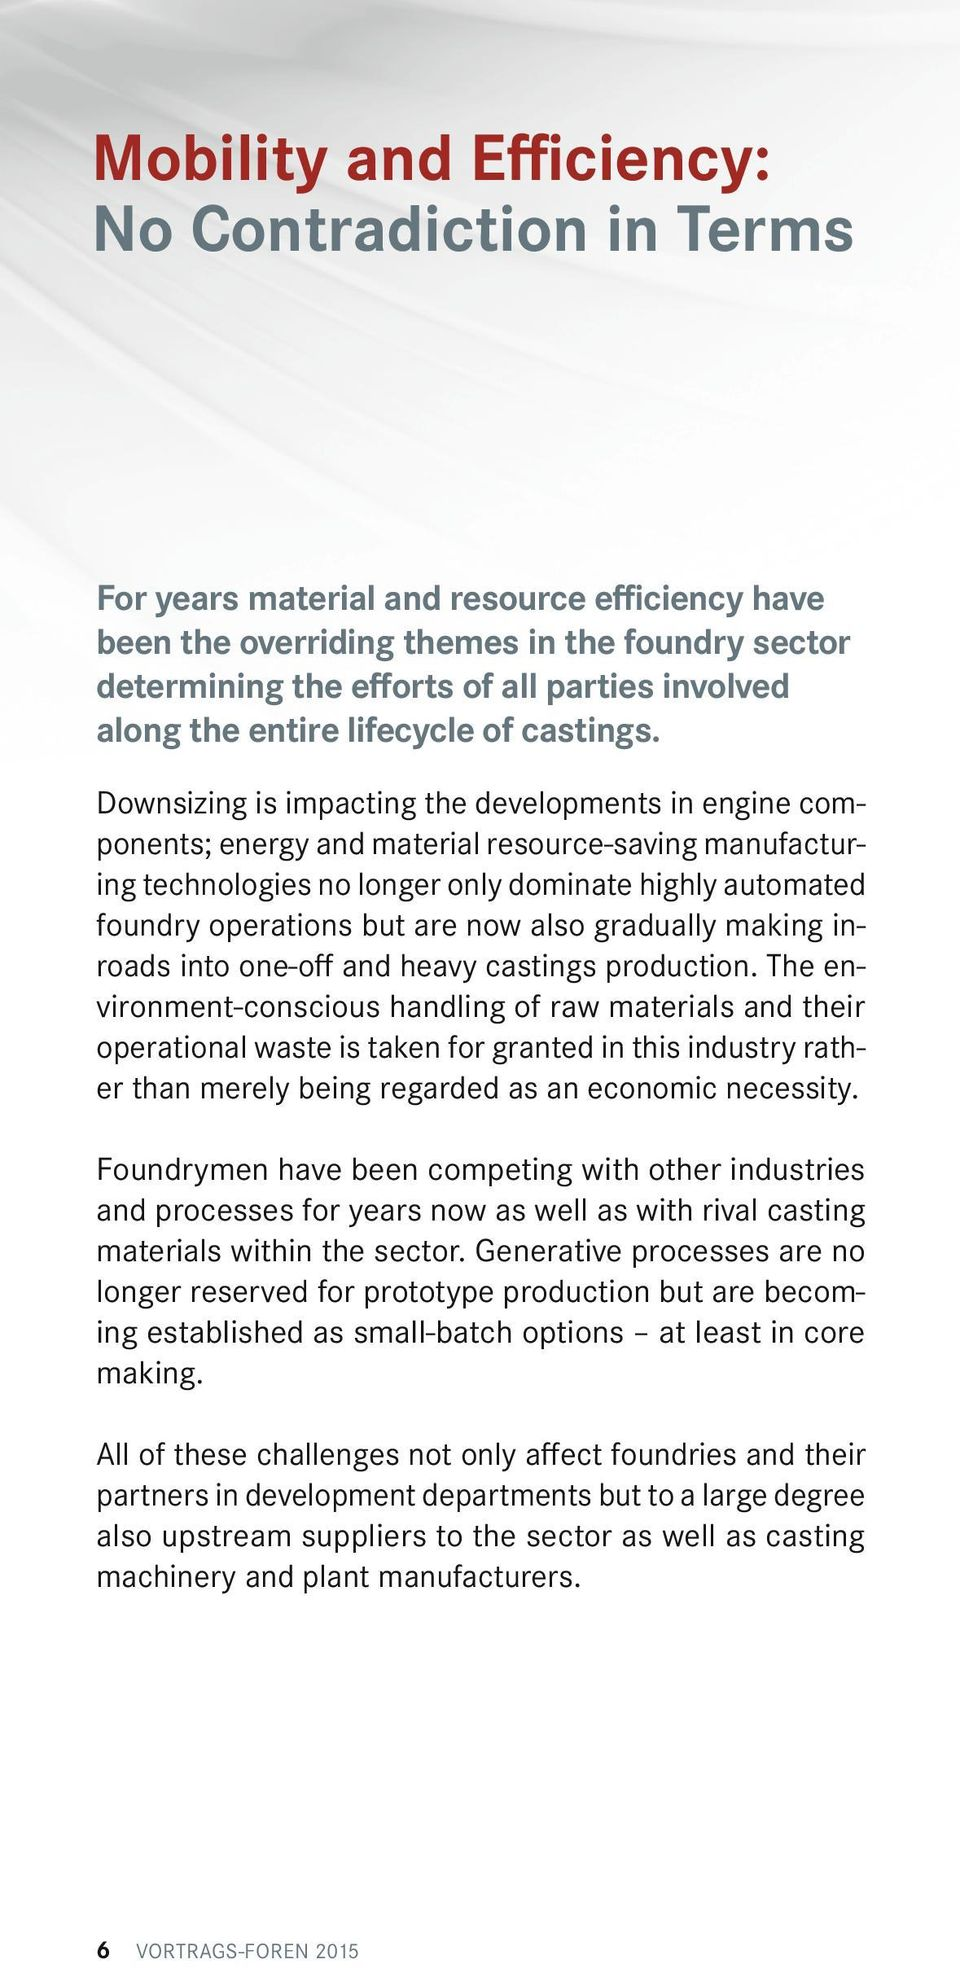 Downsizing is impacting the developments in engine components; energy and material resource-saving manufacturing technologies no longer only dominate highly automated foundry operations but are now